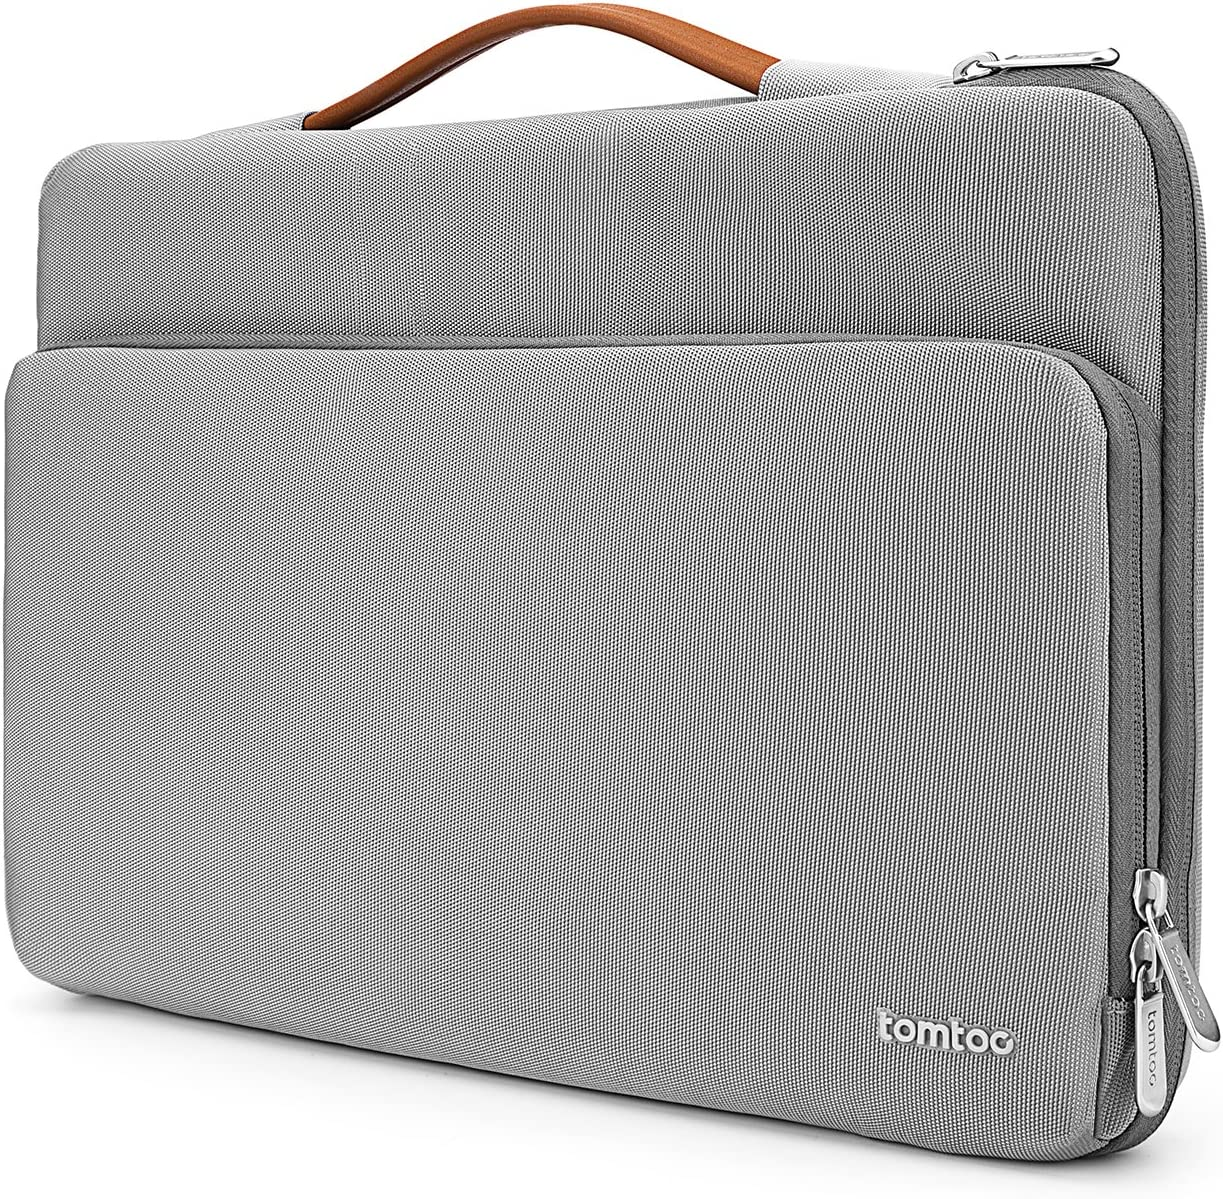 tomtoc 360 Protective 14 Inch Laptop Sleeve for 15-inch New MacBook Pro w/Touch Bar A1990 A1707, Acer HP Dell Chromebook 14, ThinkPad X1 Yoga (1-4th Gen), Surface Laptop 3 15 Inch 2019, Notebook Bag